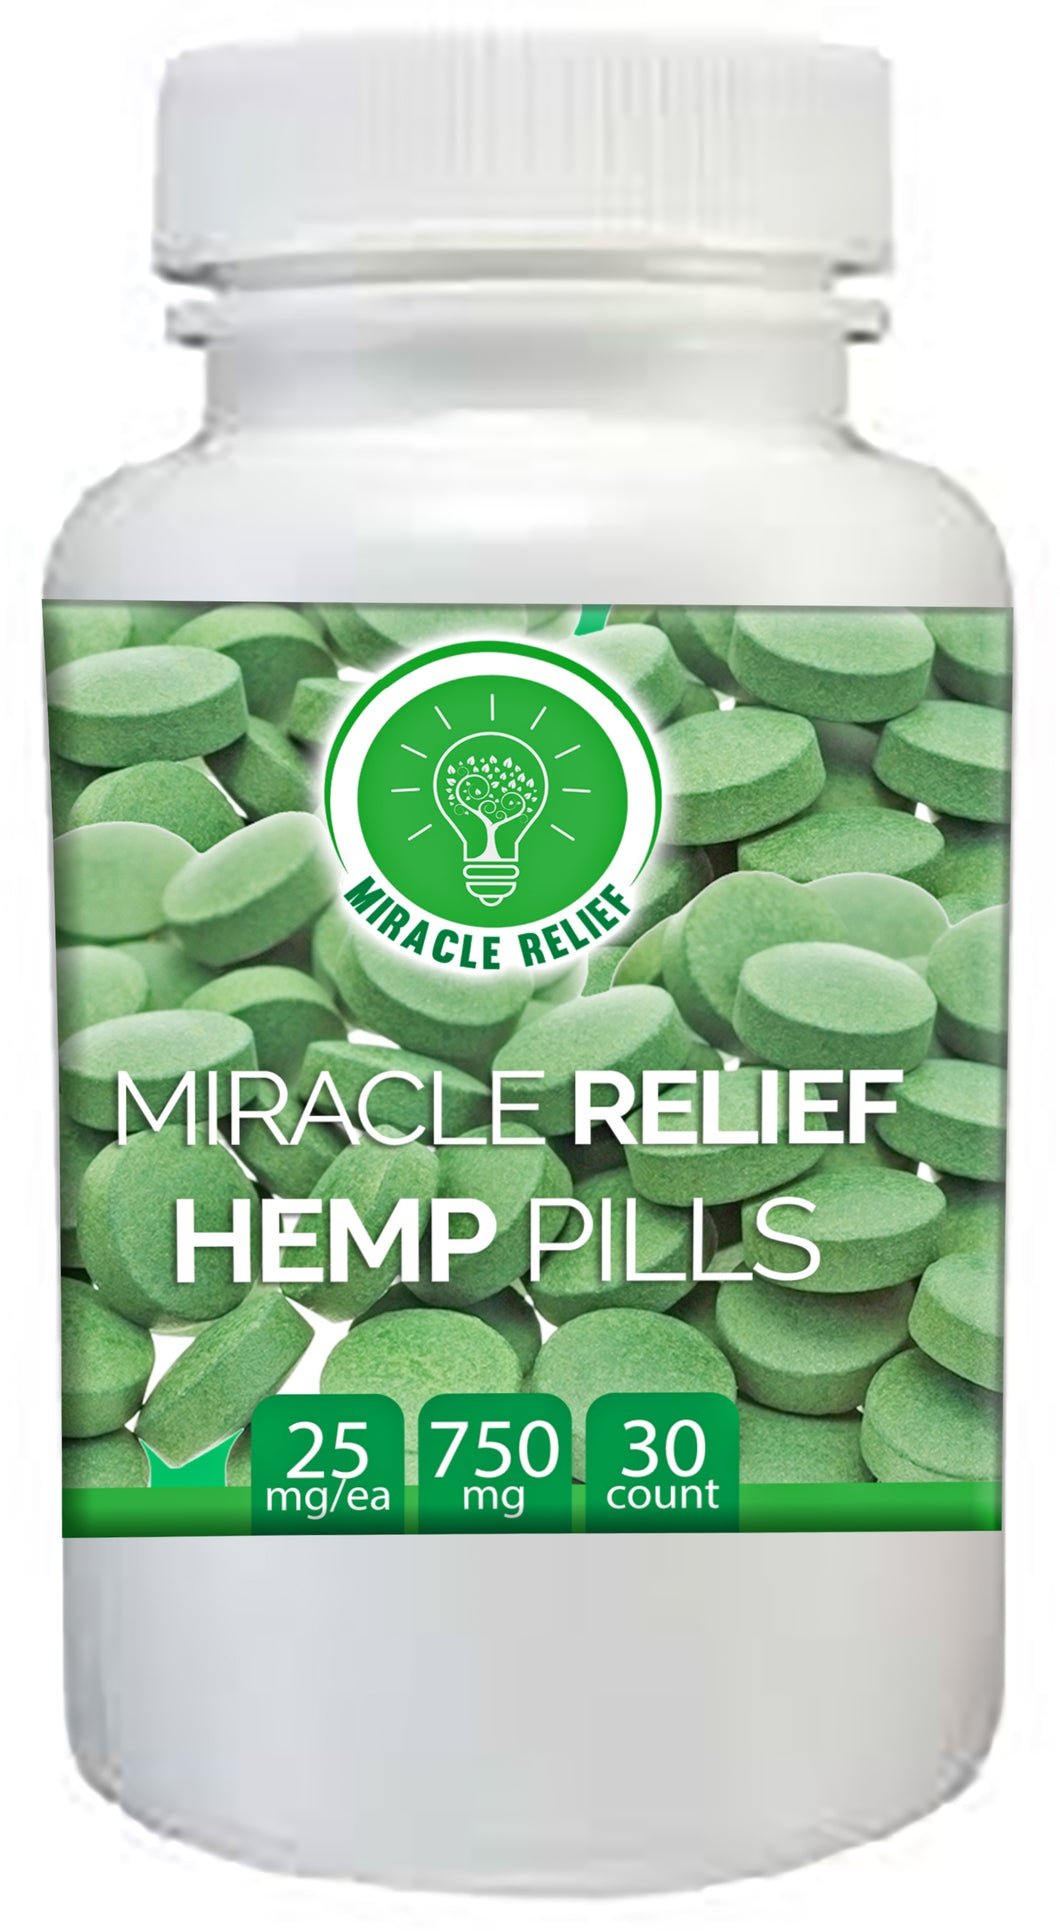 Hemp Supplement Pressed Tablets- Known to Help Ease Anxiety, Sleeplessness, Joint Pain - 25mg each - 30 count - 750mg total CBD For You - Miracle Relief Club